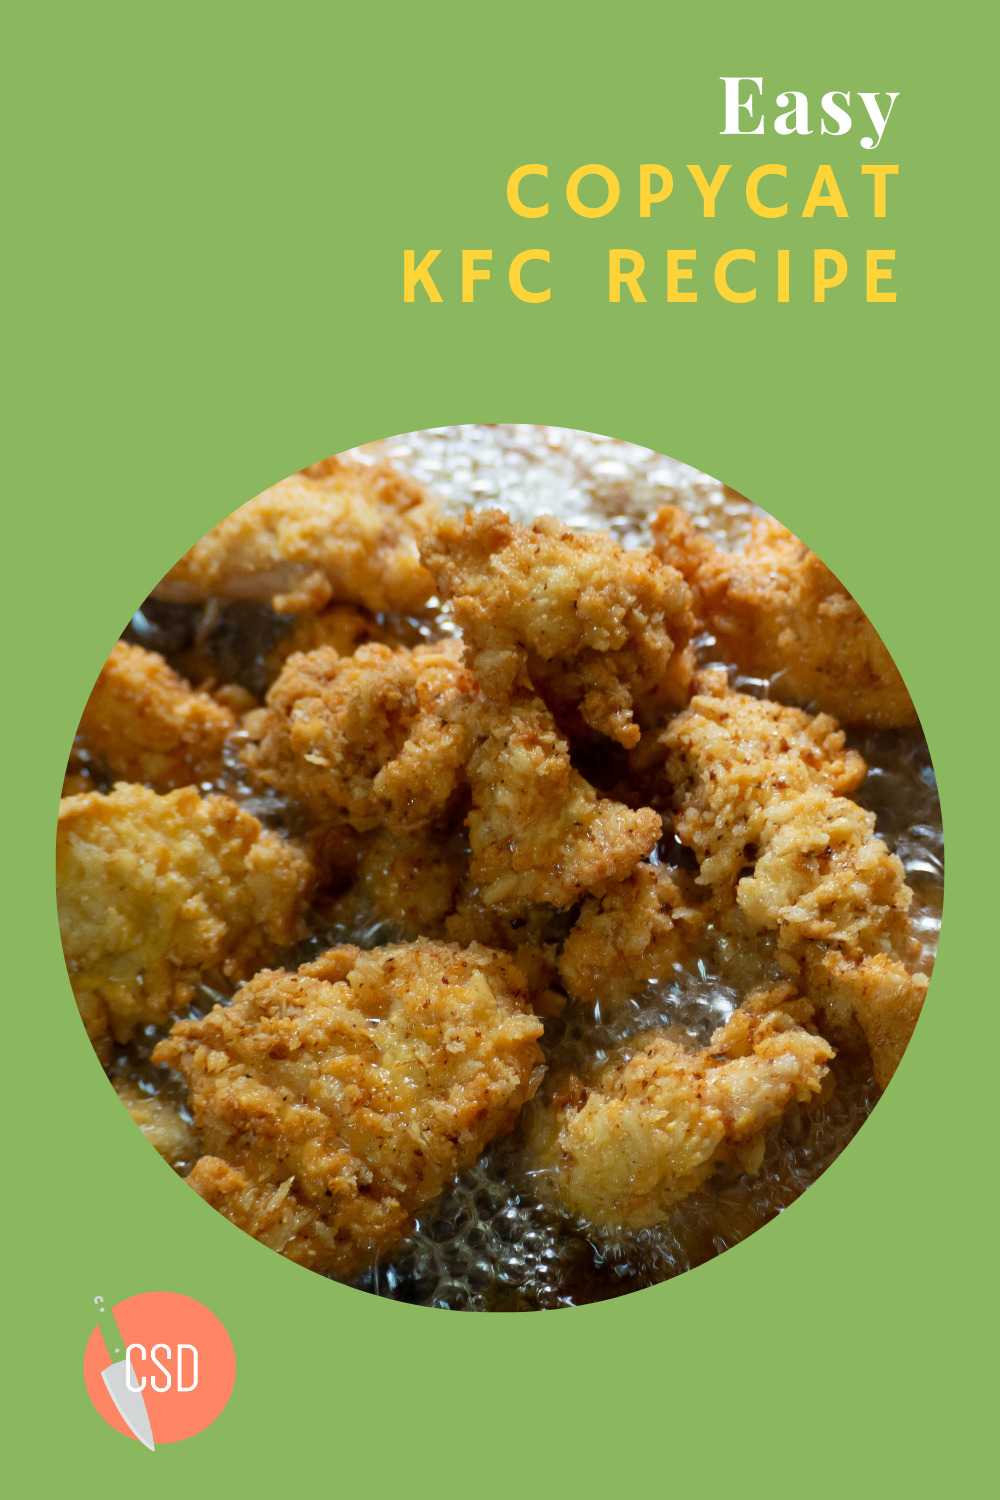 Who needs to go out for chicken when you have this KFC copycat recipe? That's right... tastes just like the finger-lickin' good stuff you can buy. Lick up... no napkins needed.